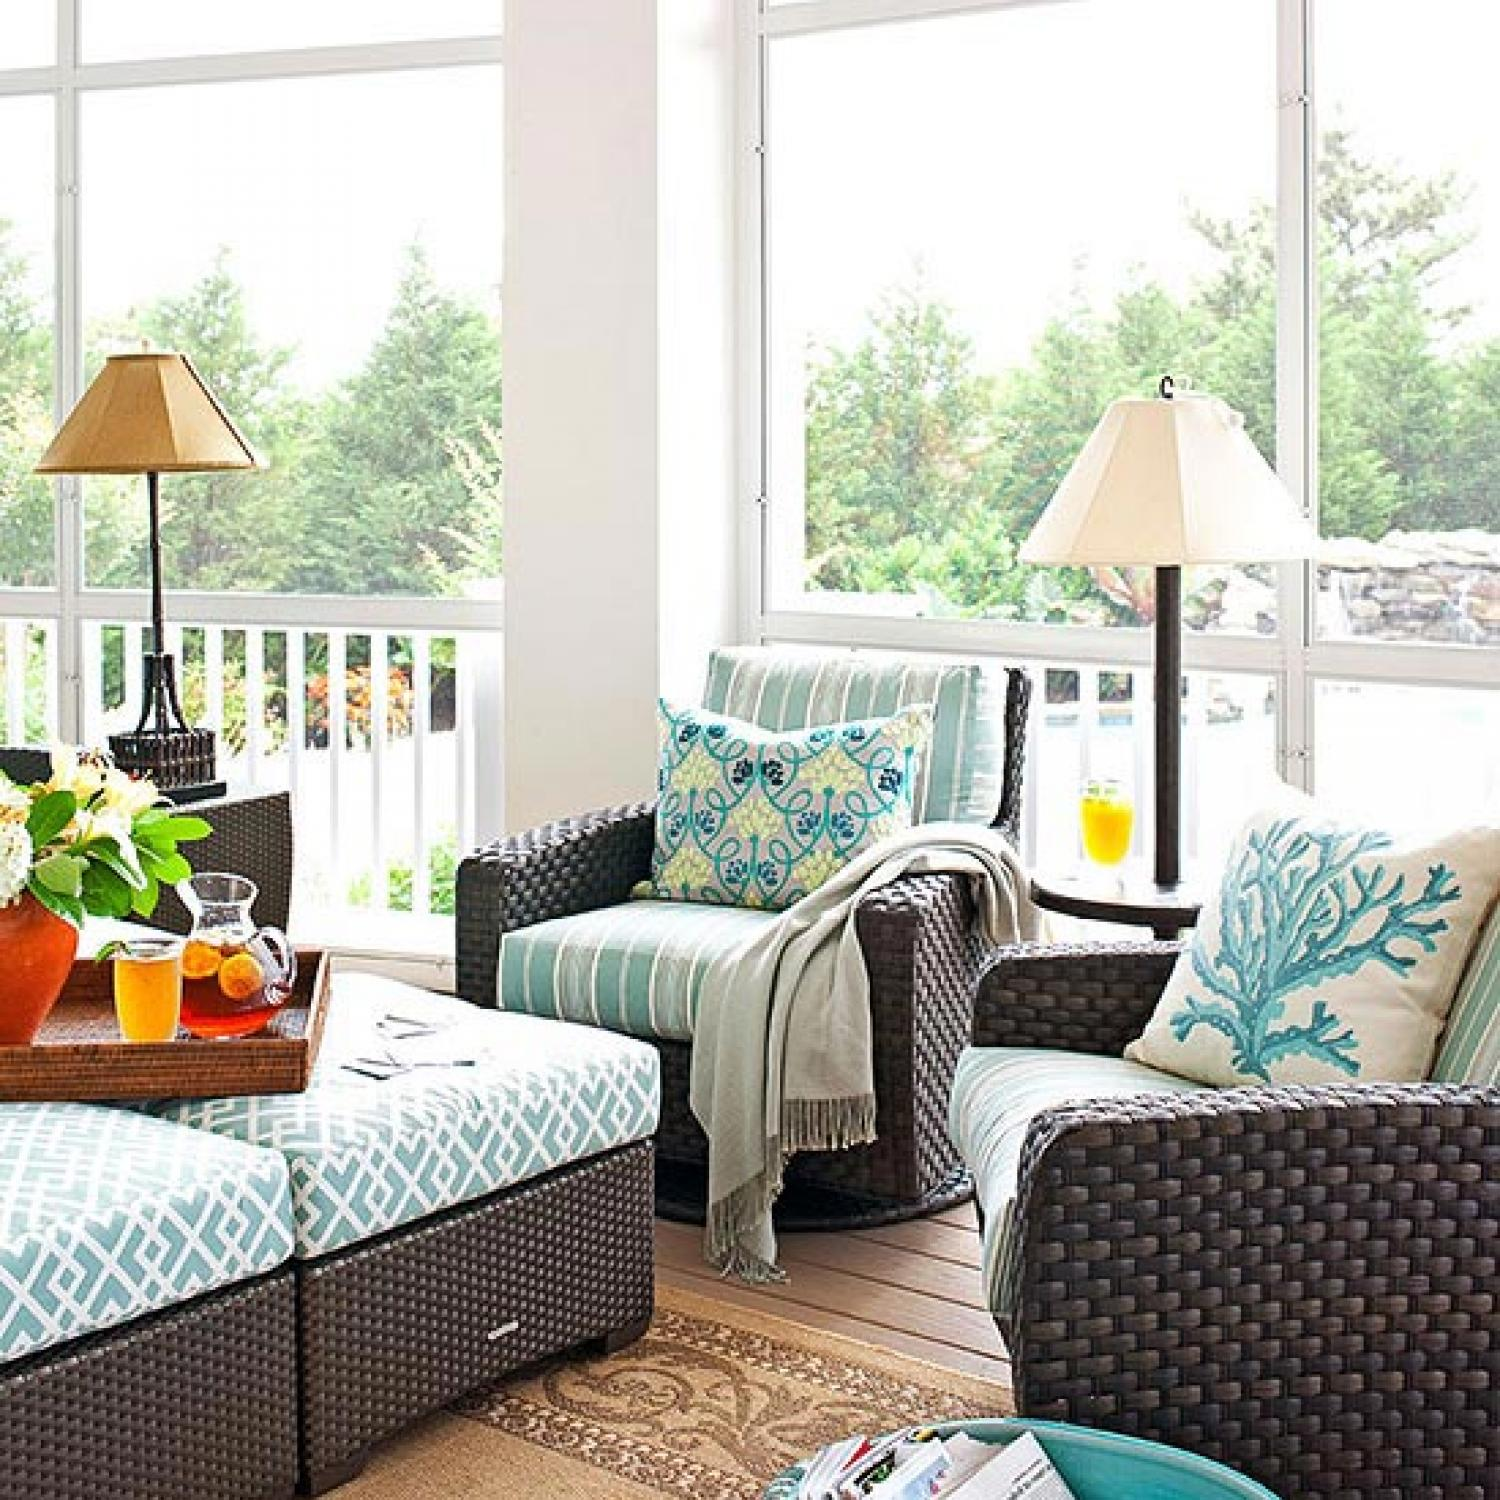 Spacious Beach House with Seaside Palette